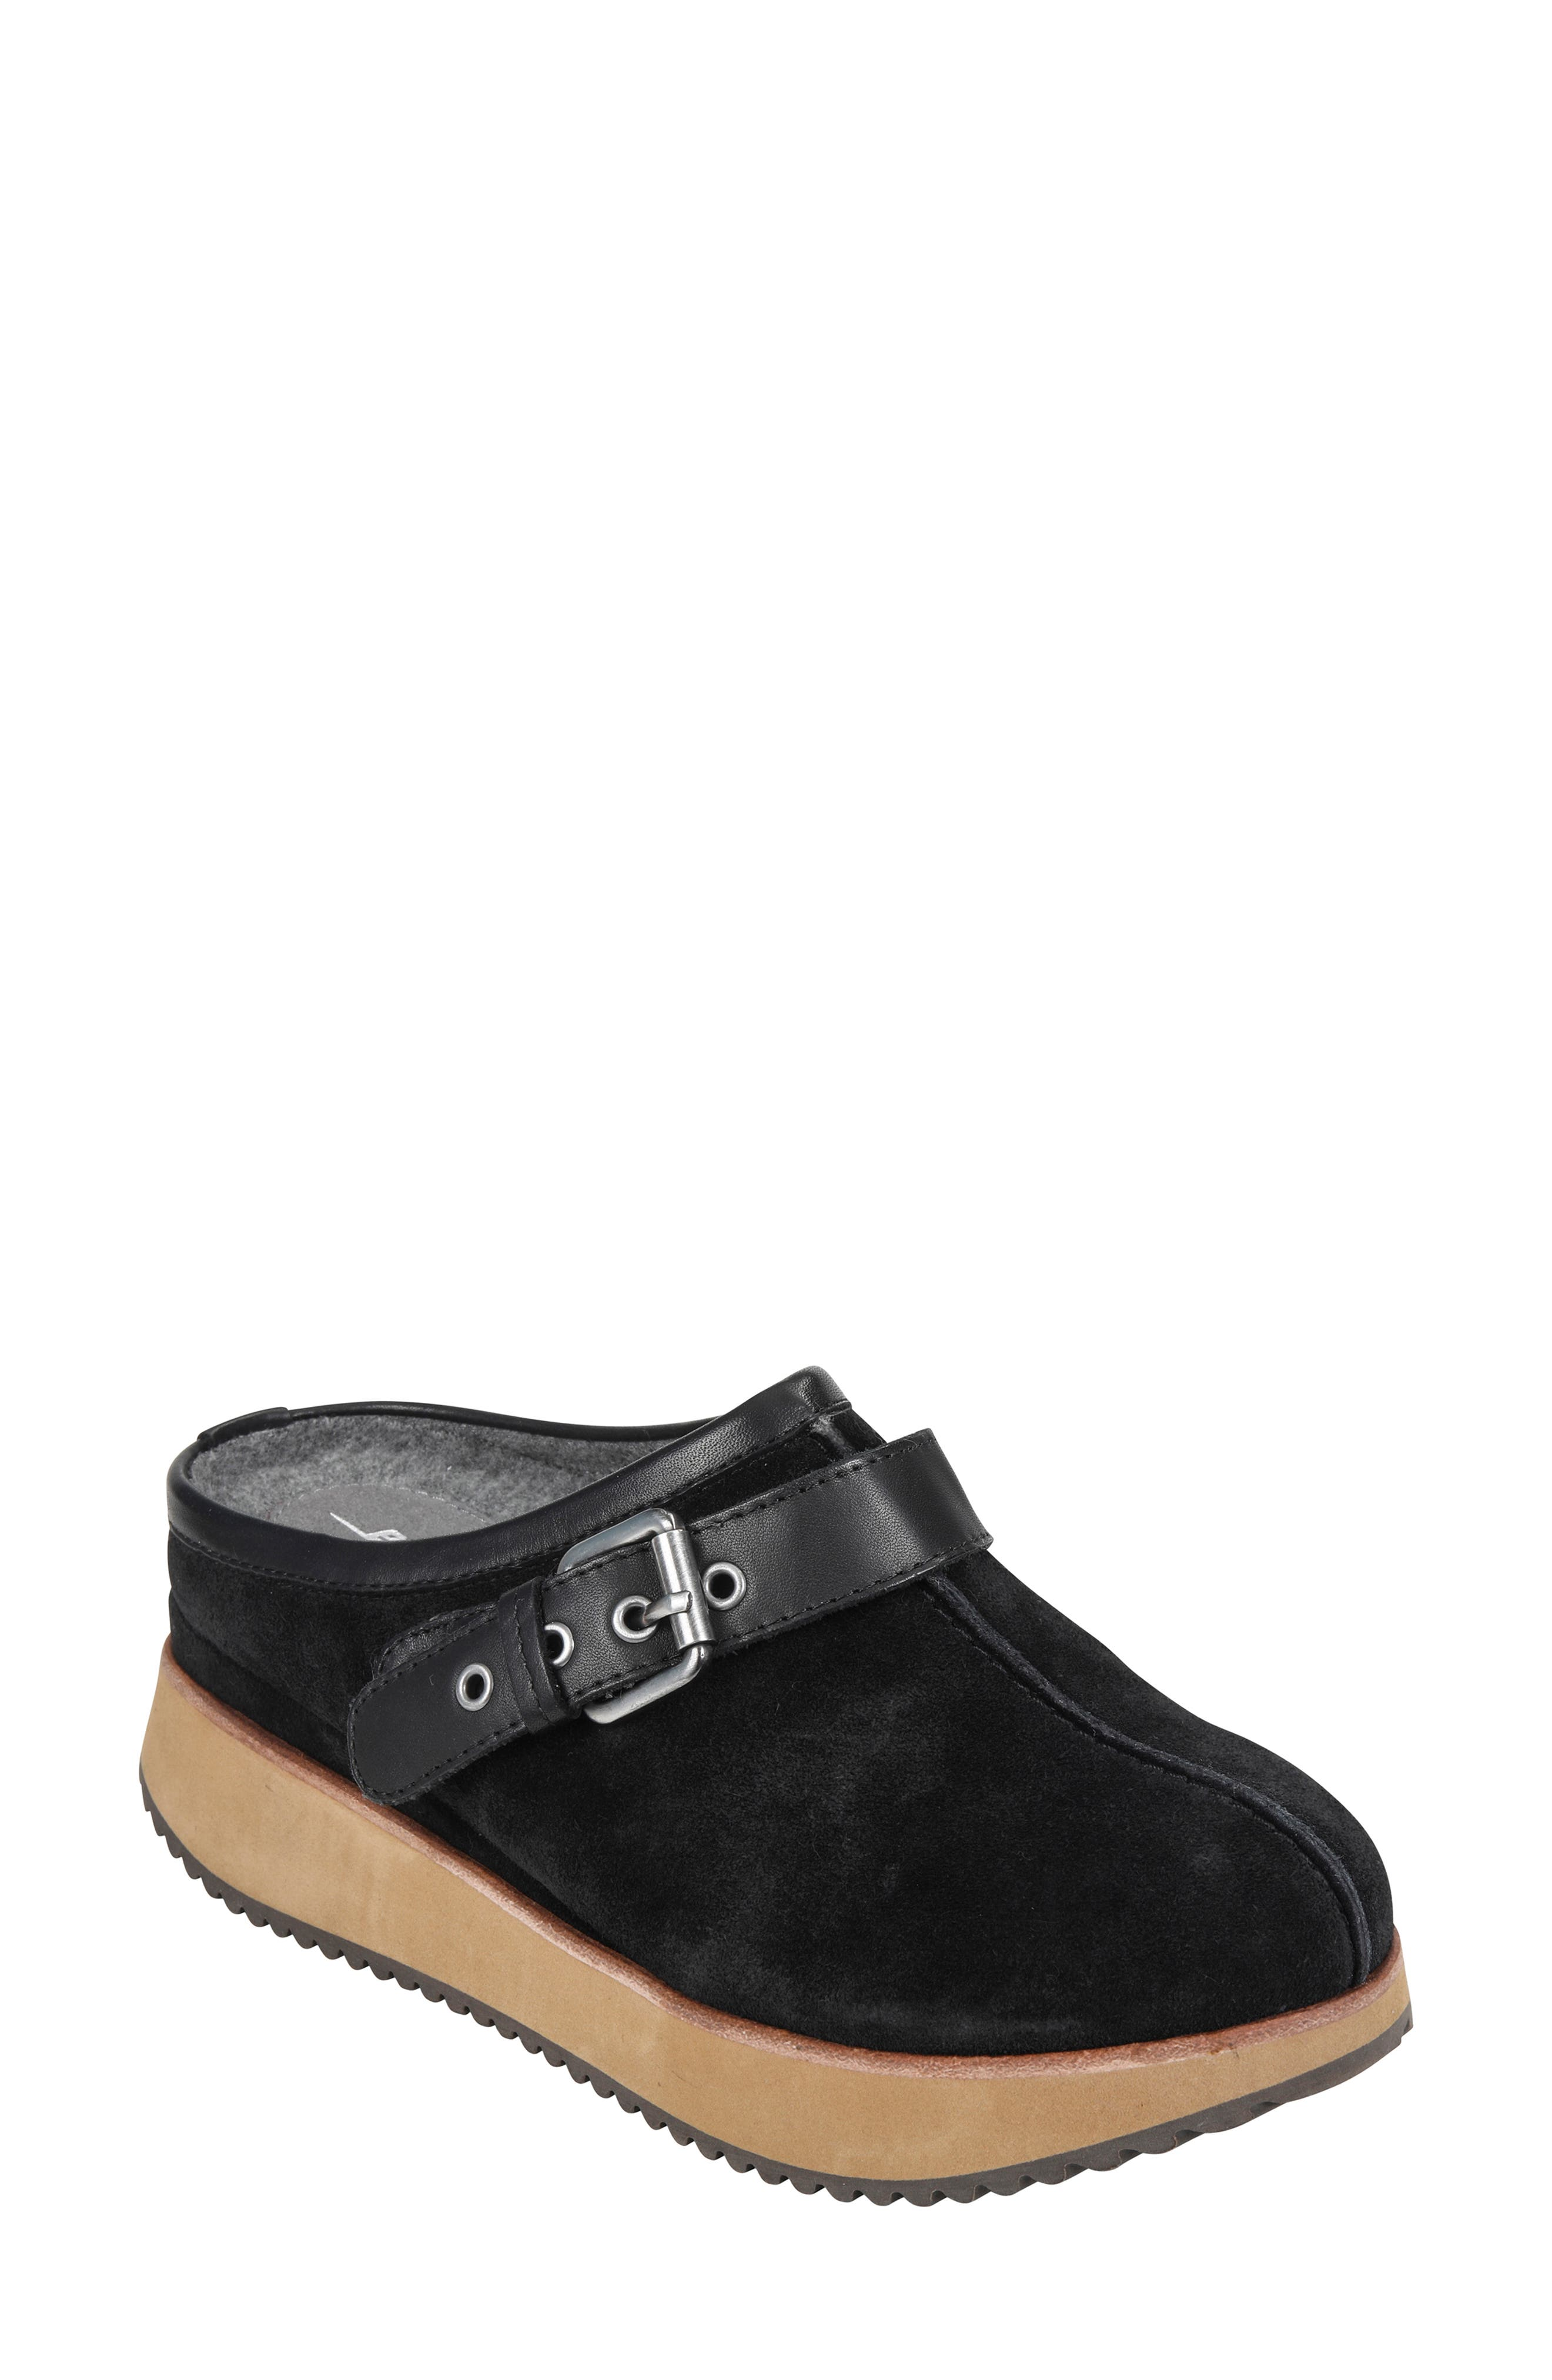 Lyra Buckle Clog,                             Main thumbnail 1, color,                             BLACK SUEDE